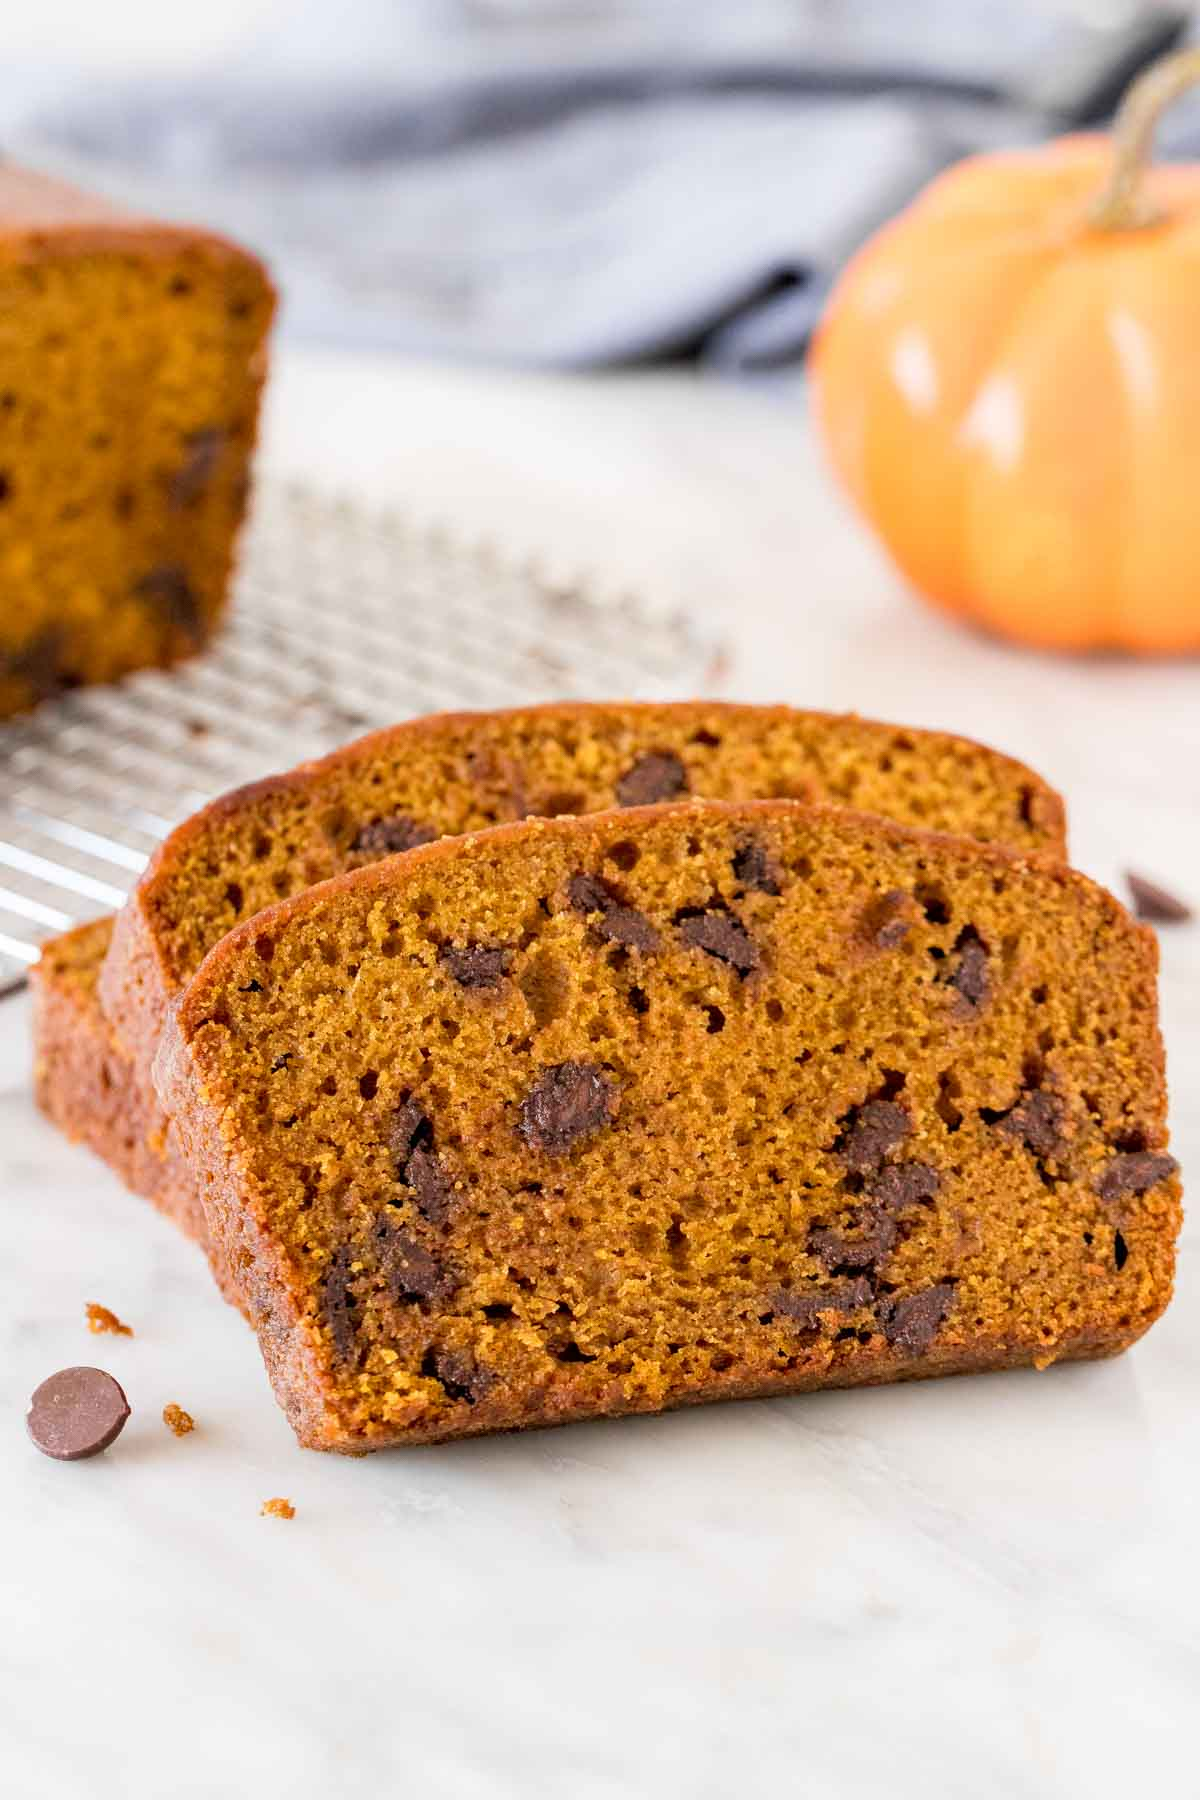 Slices of pumpkin chocolate chip bread beside half a loaf on a cooling rack.